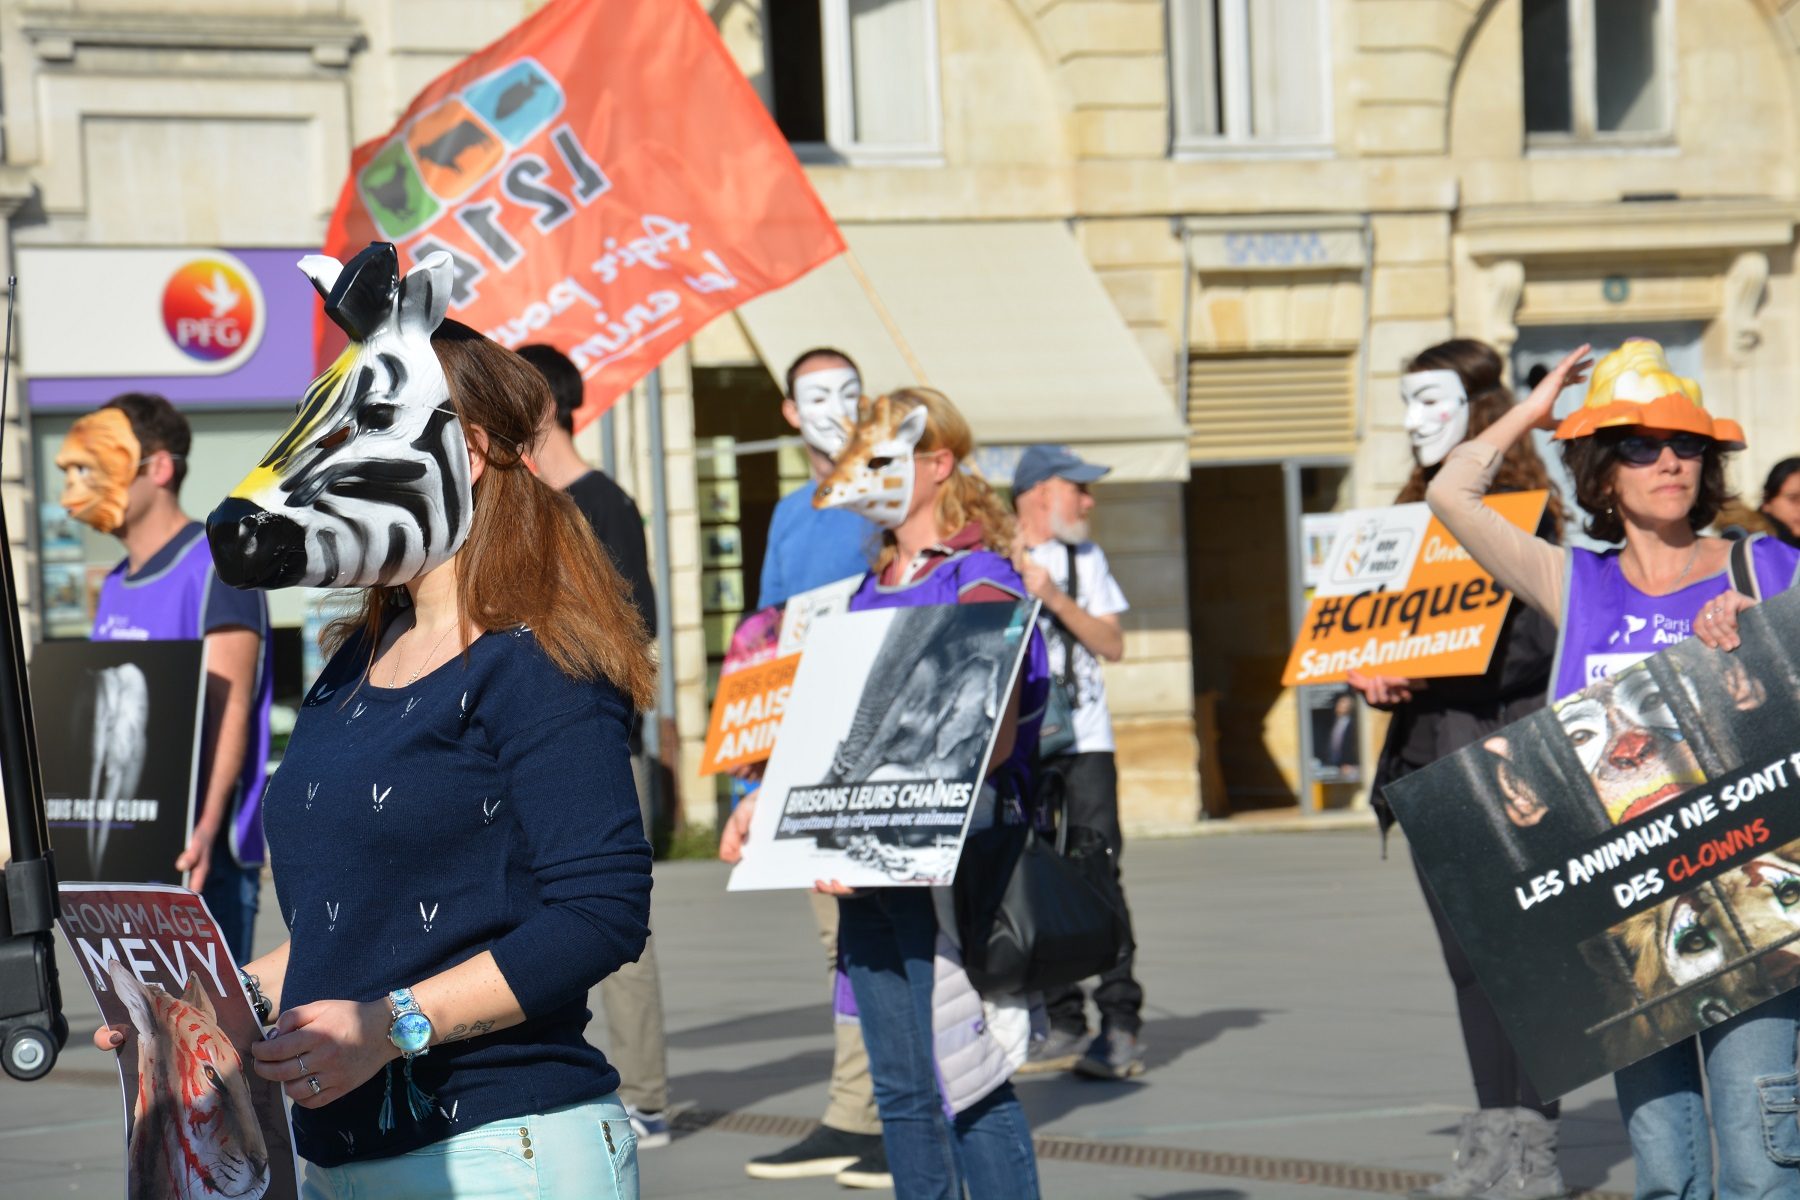 manifestation_mairie_bordeaux_animaux_cirques_triangle3